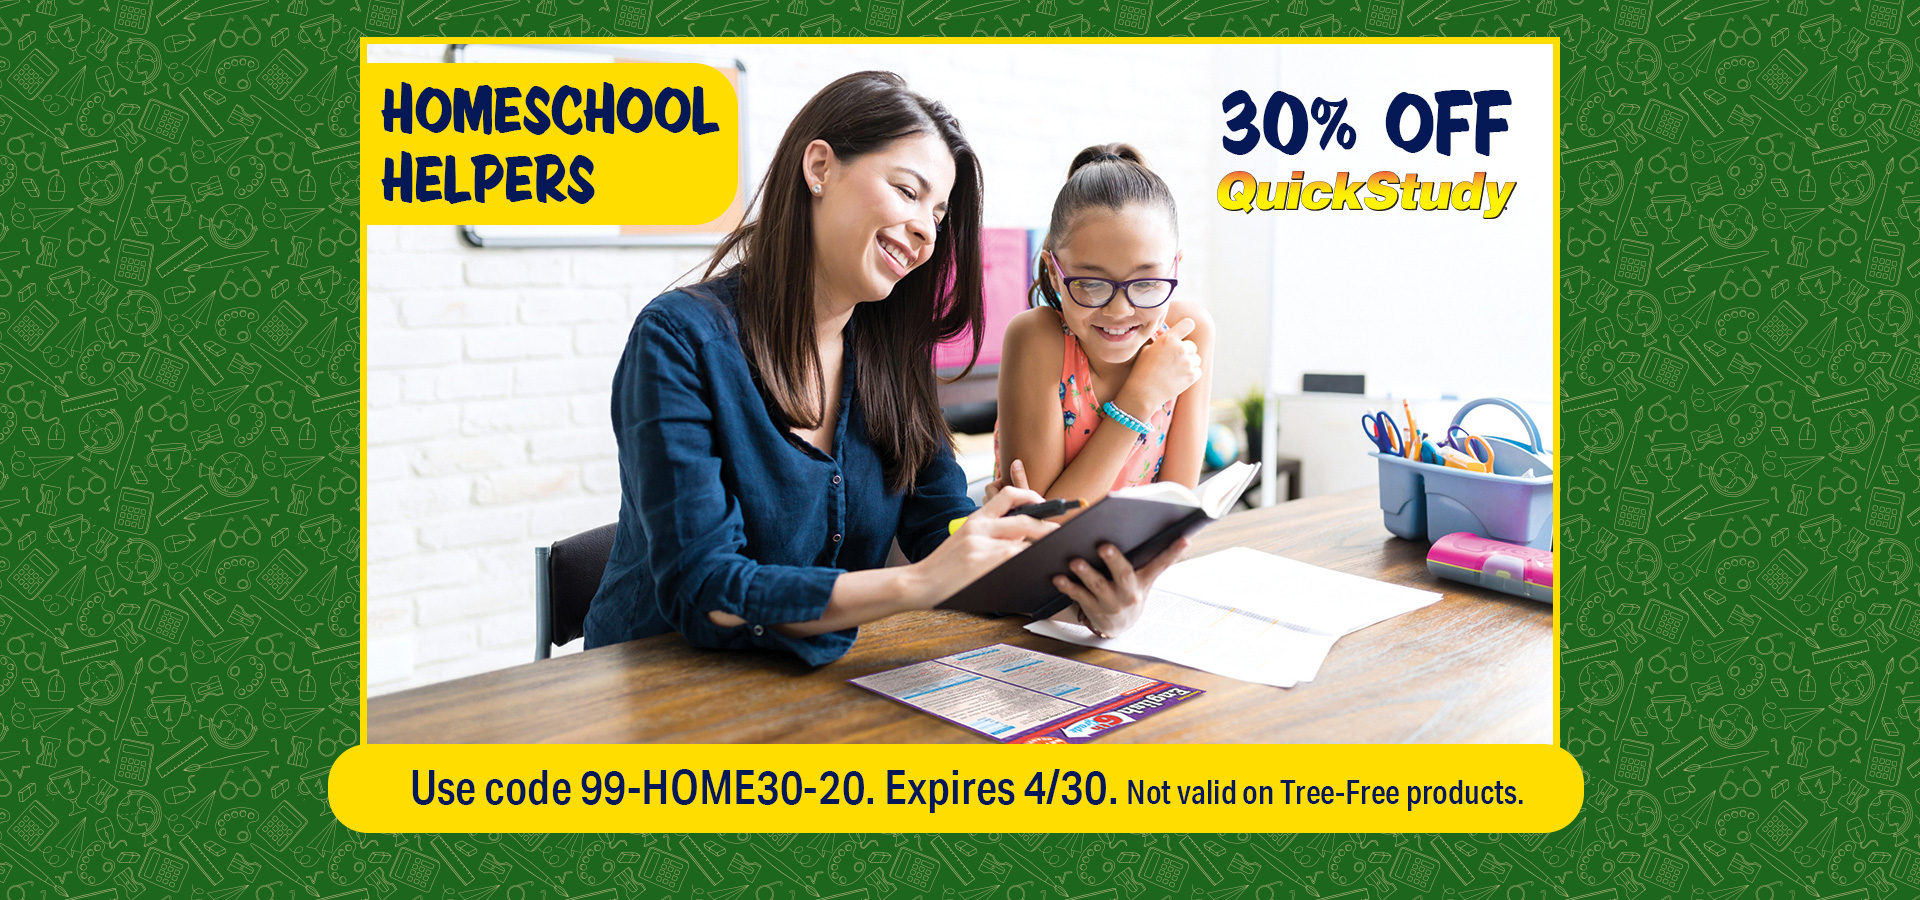 Homeschool-home-page-banner